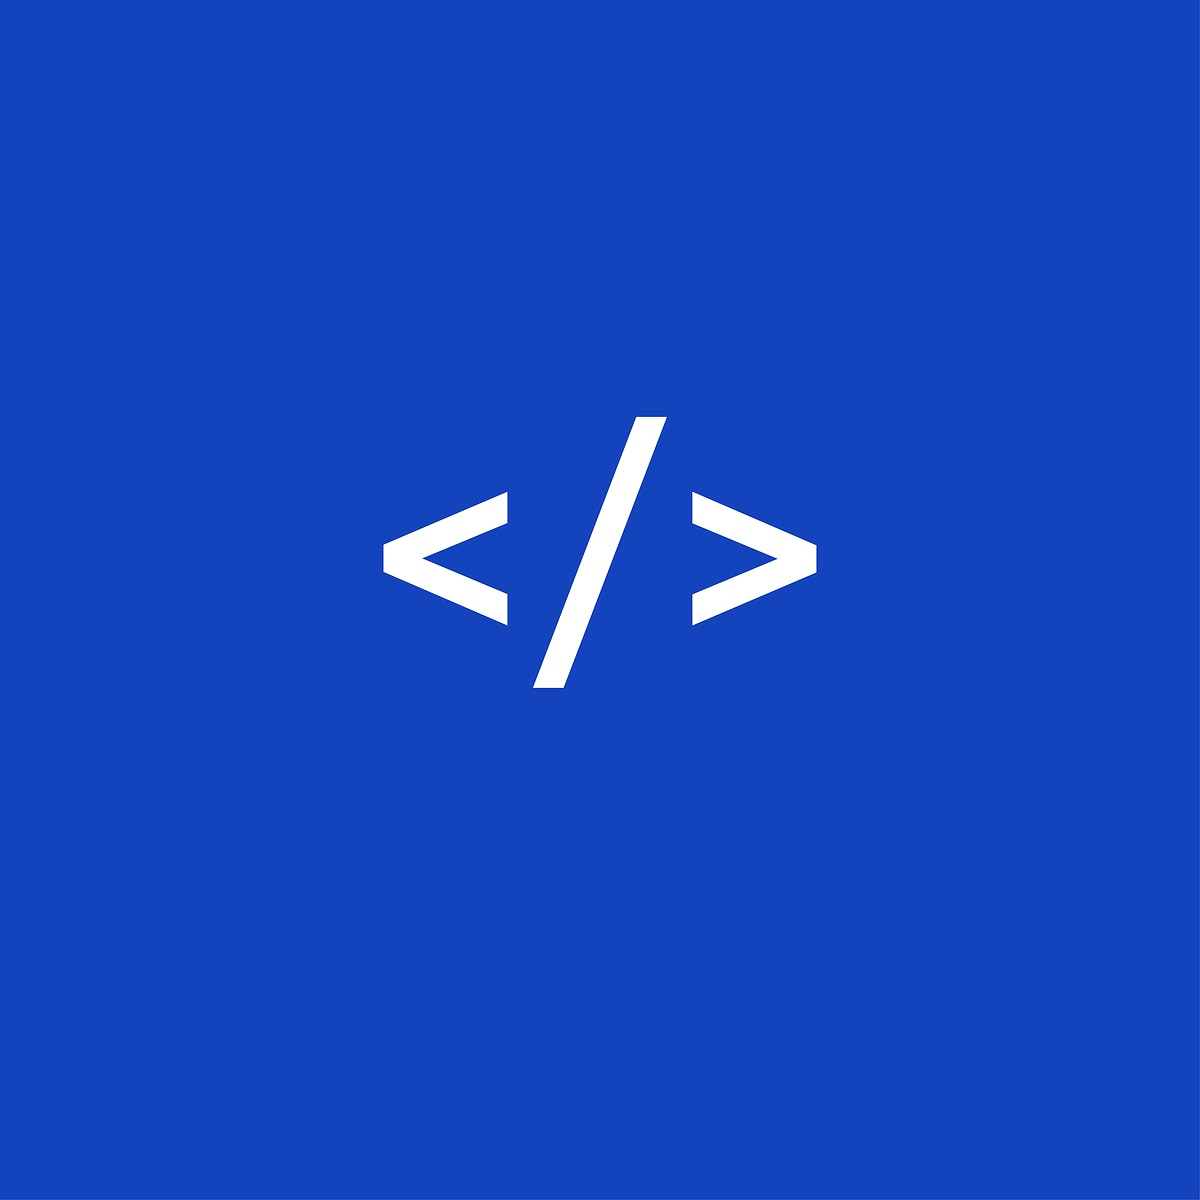 Web code icon vector on blue background